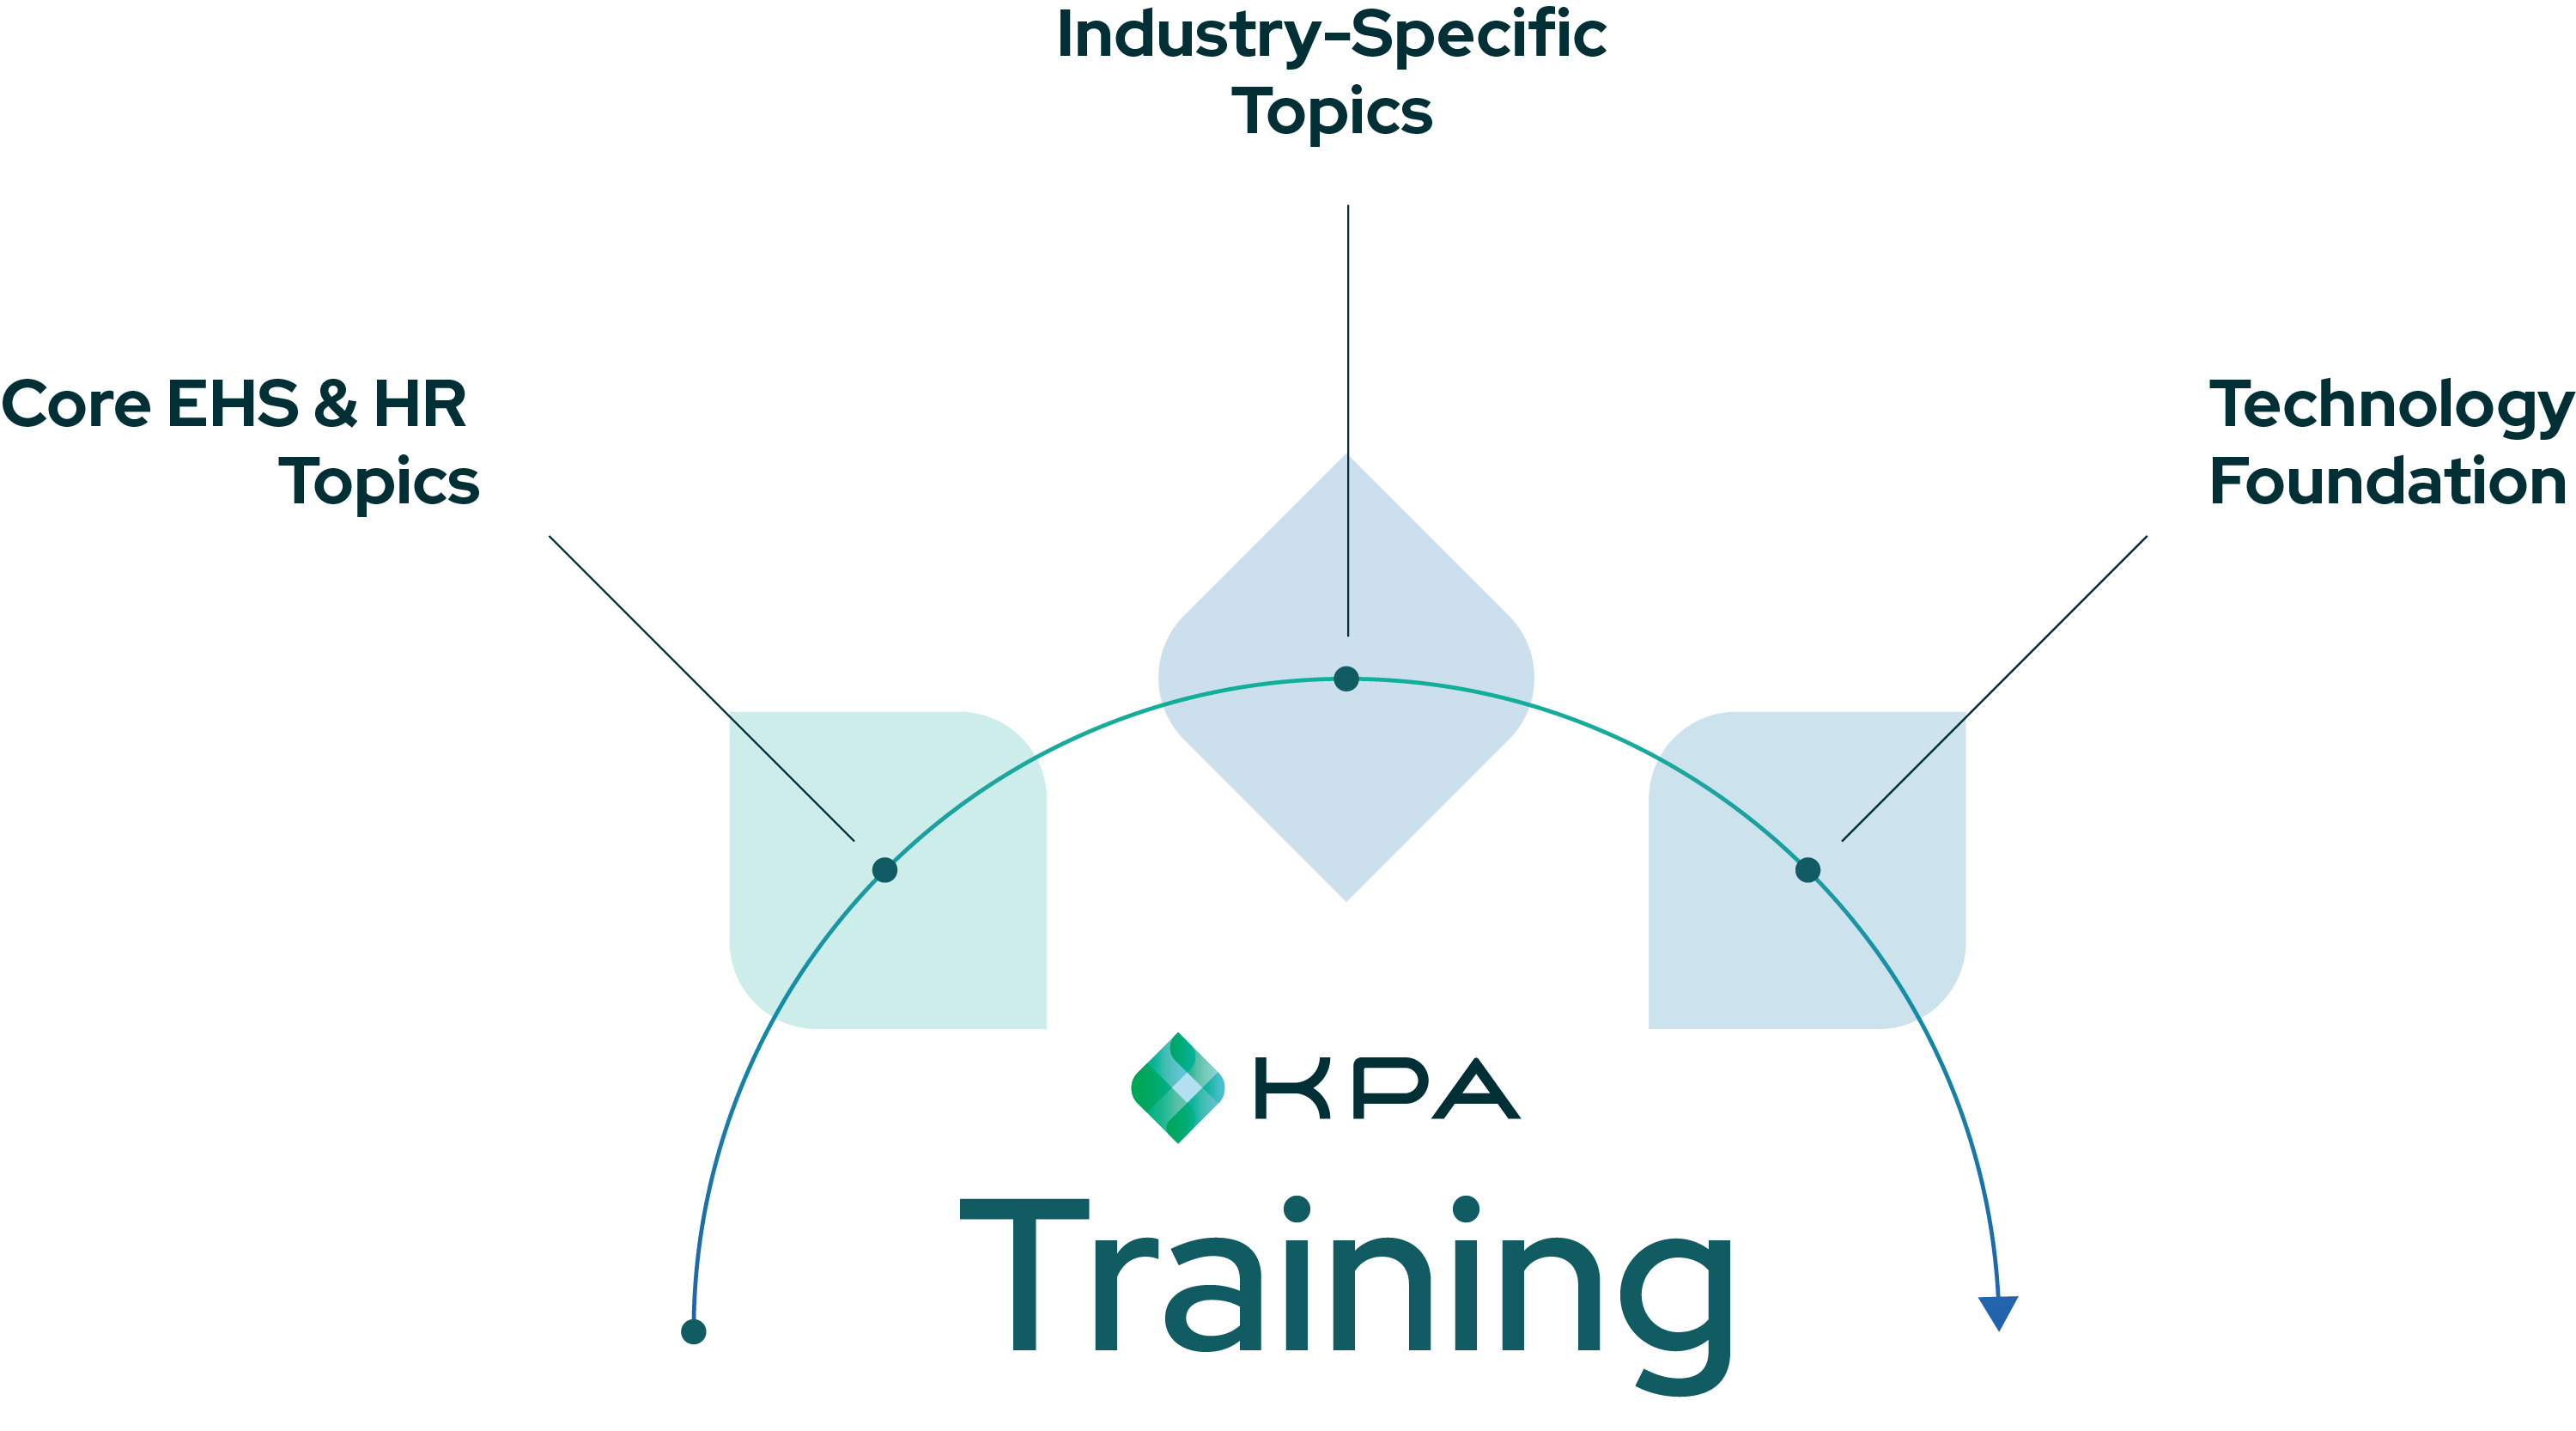 kpa training site marketecture image